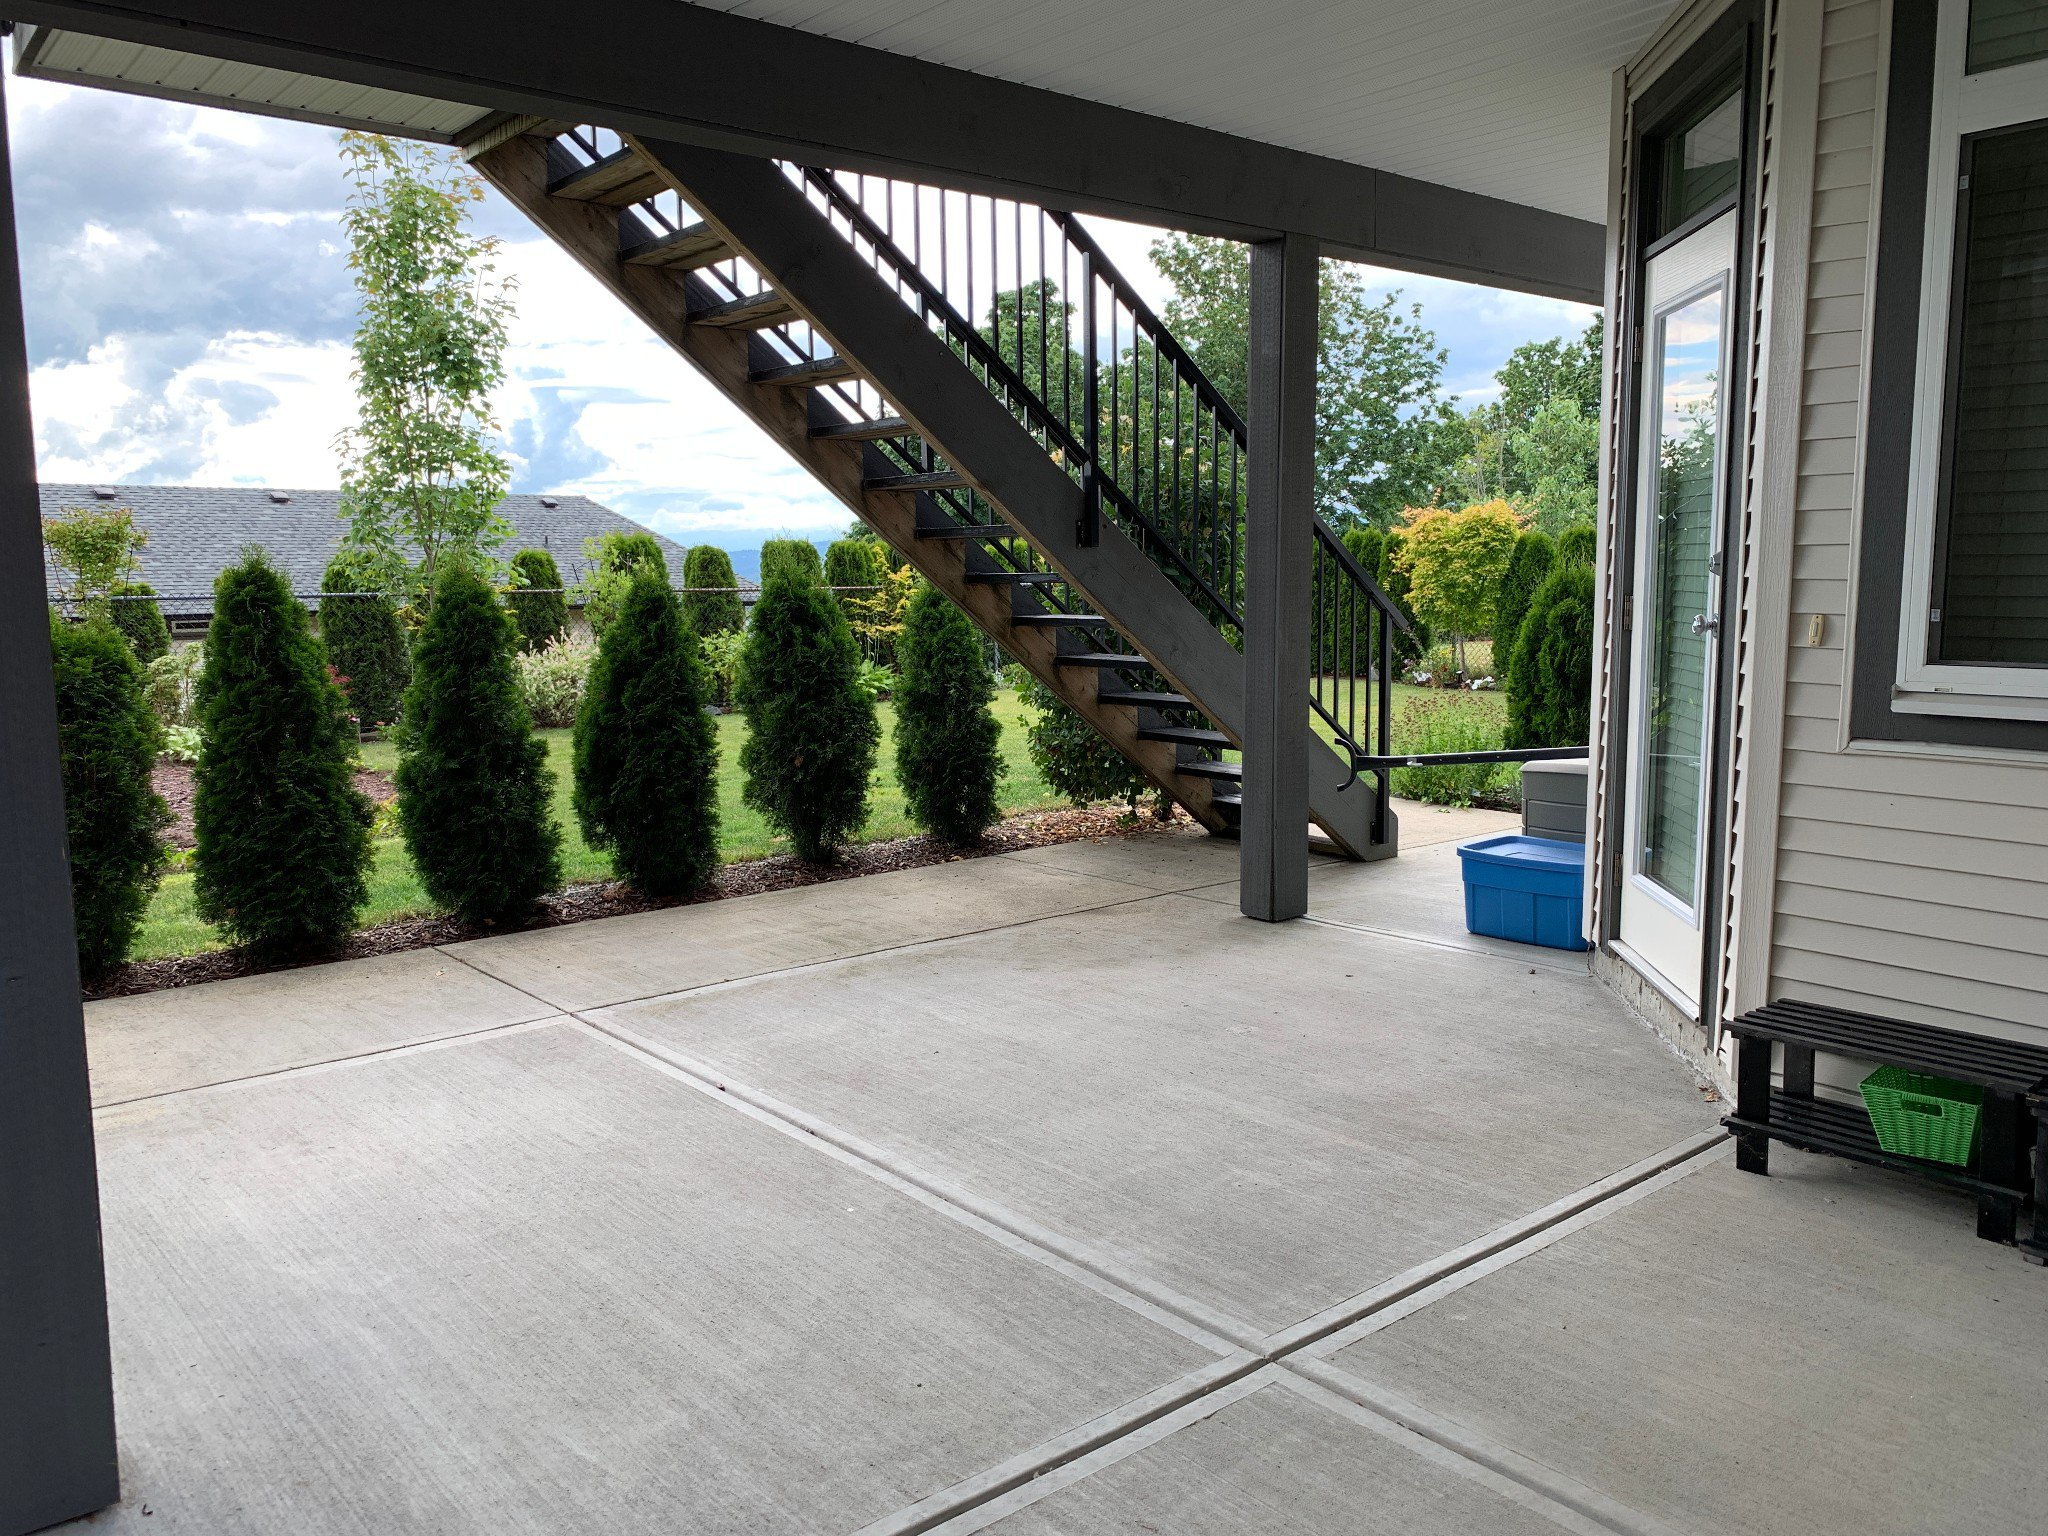 Photo 10: Photos: BSMT 3975 Caves Court in Abbotsford: Abbotsford East Condo for rent